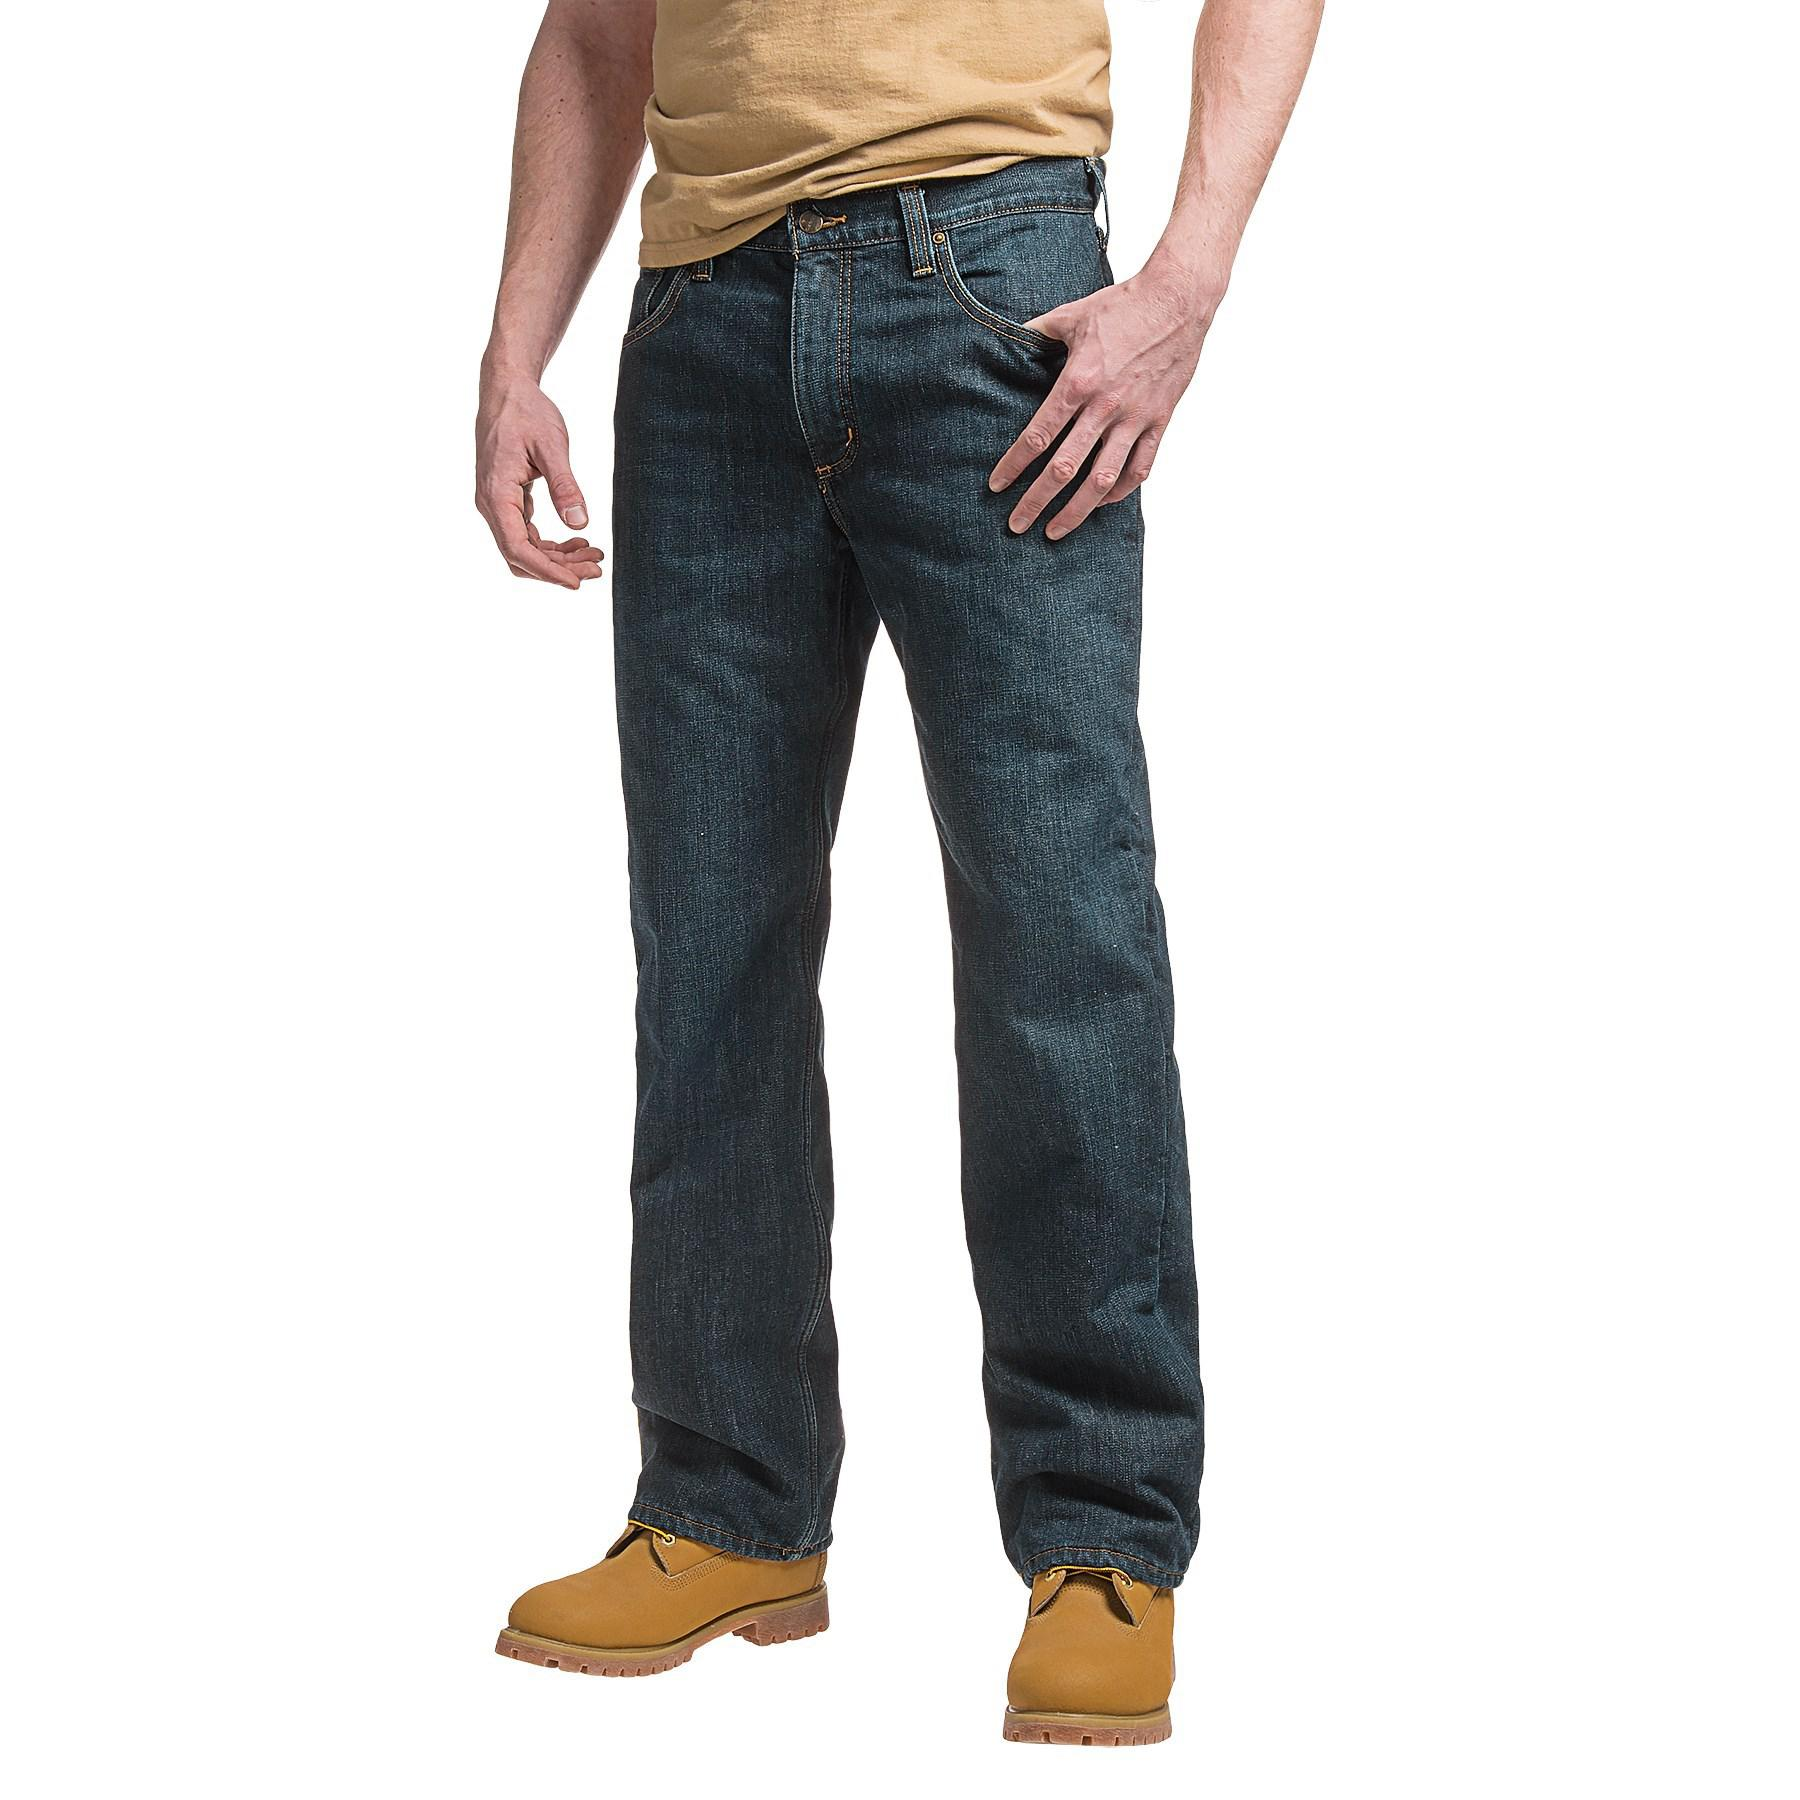 204a4832 Lyst - Carhartt Holter Fleece-lined Jeans in Blue for Men